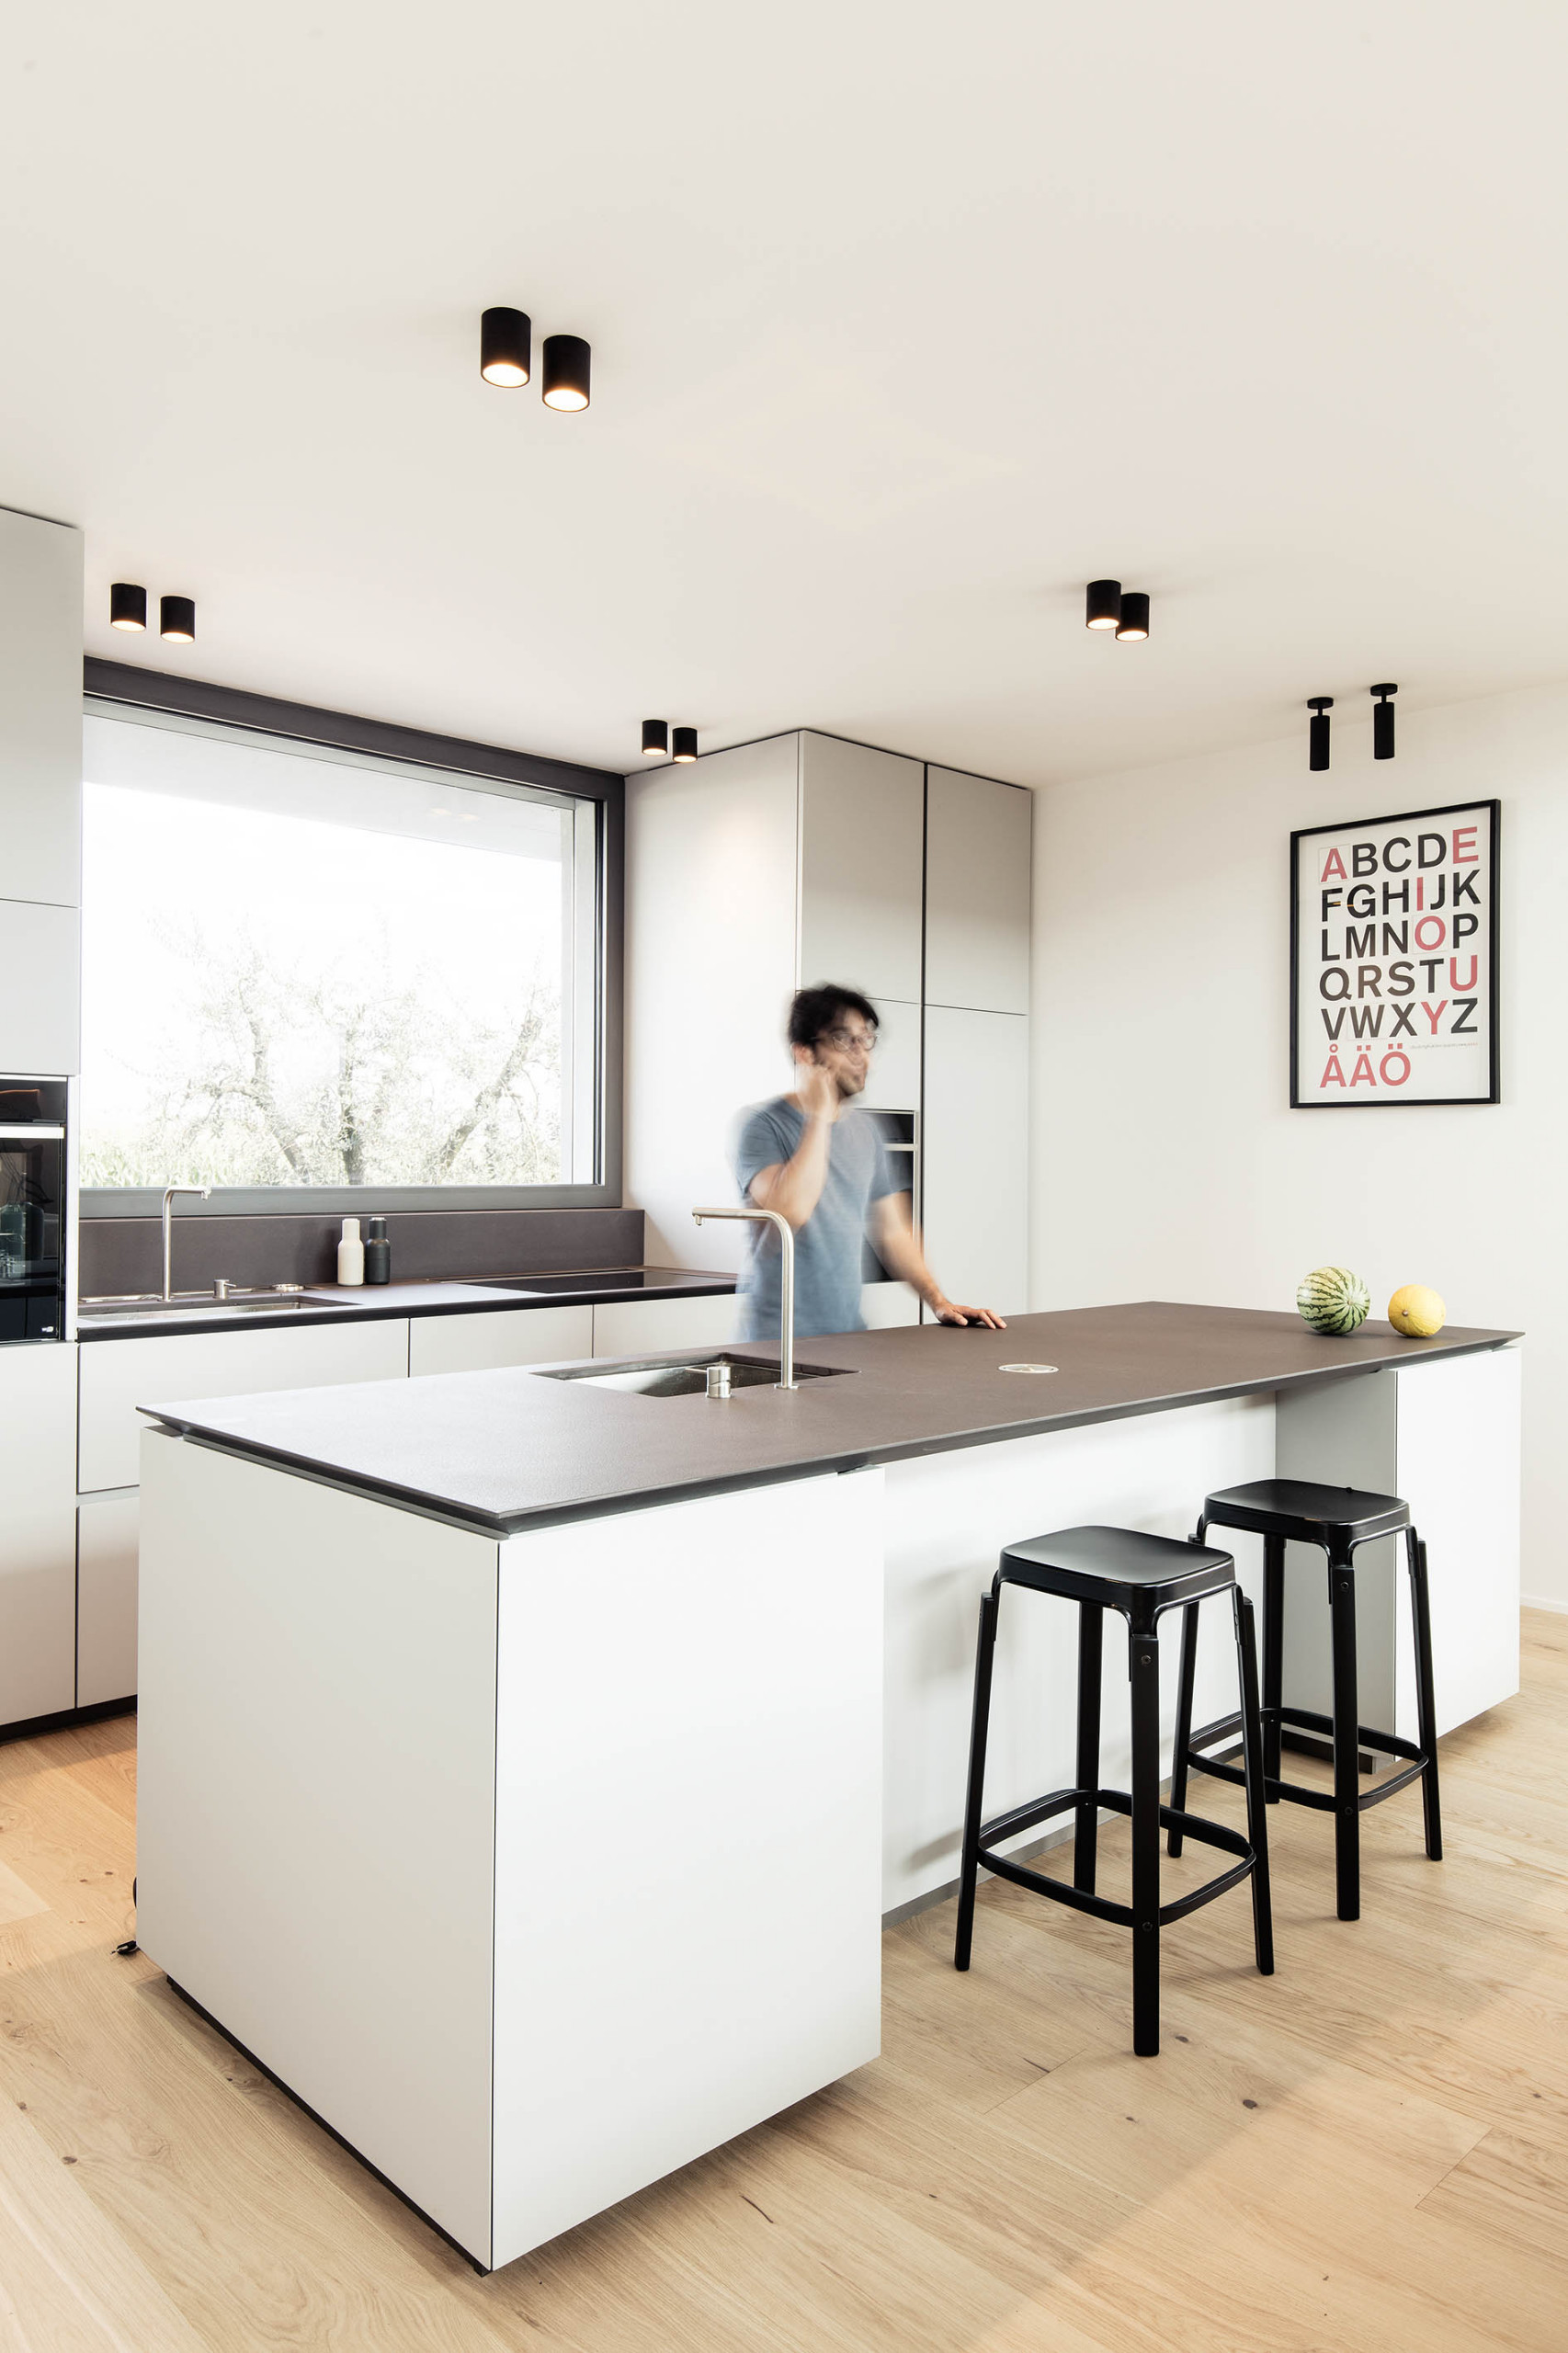 75 Beautiful Modern Kitchen With Black Countertops Pictures Ideas May 2021 Houzz